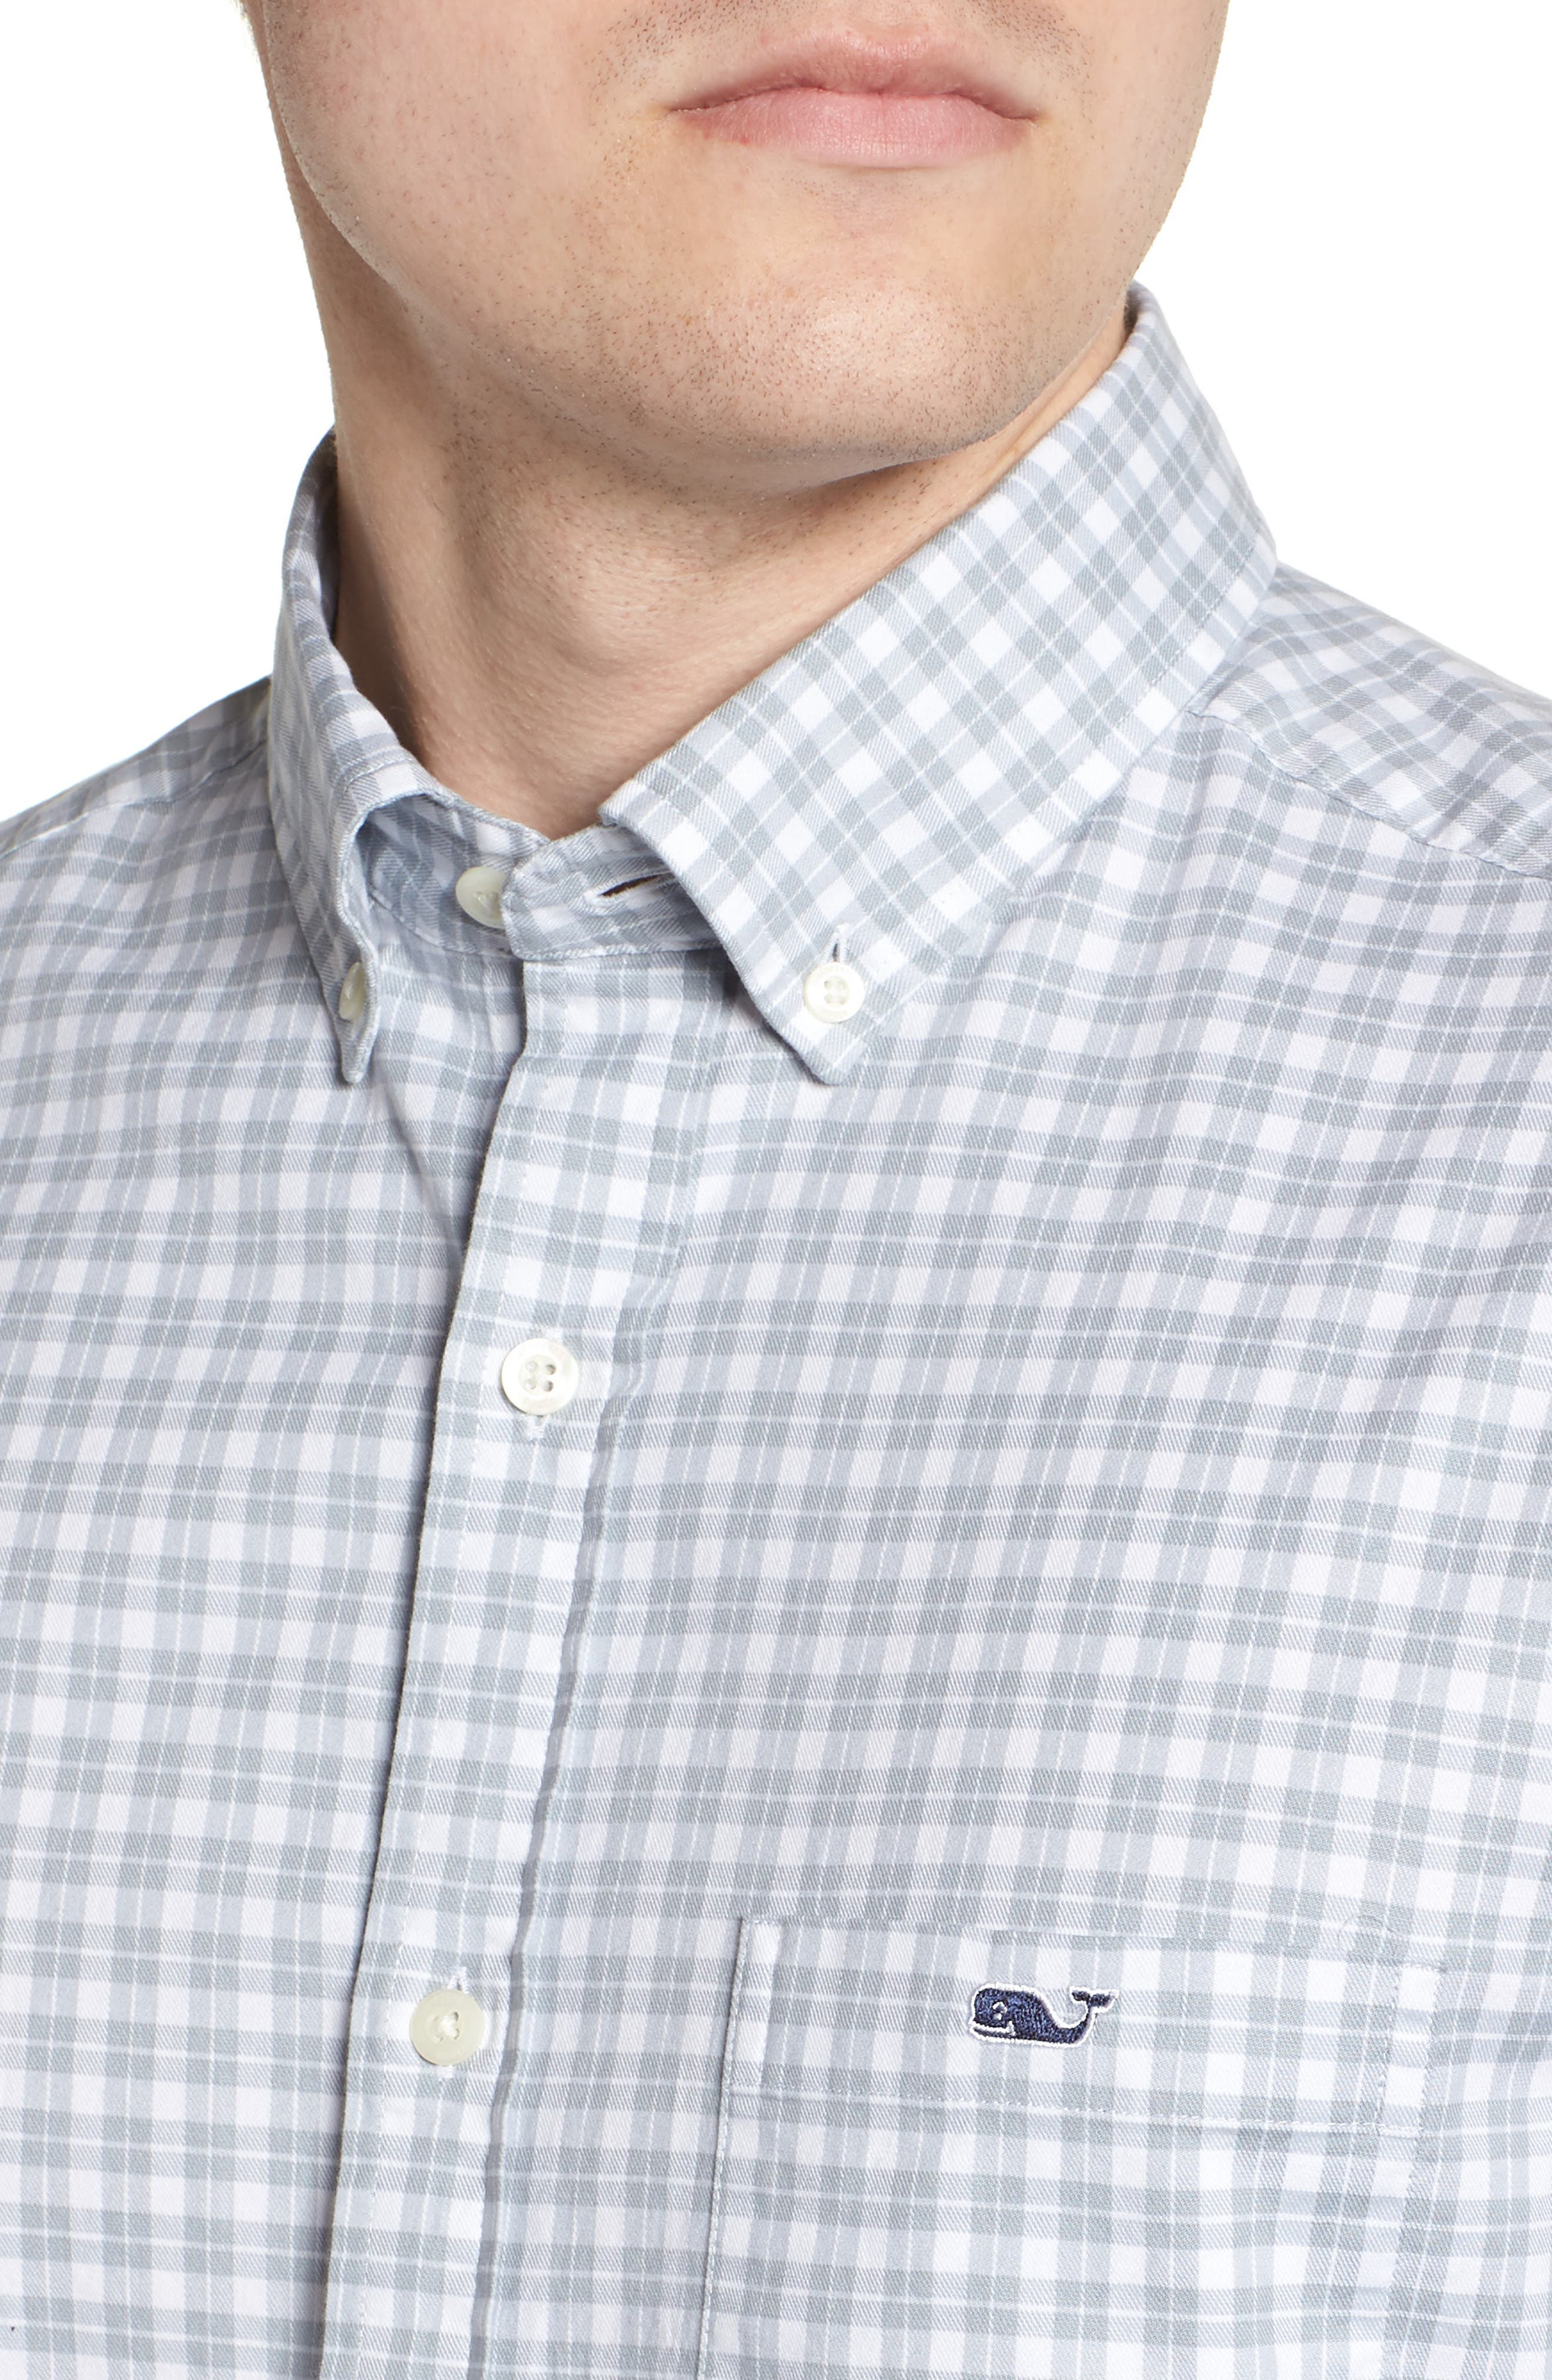 Eagle Hill Classic Fit Check Sport Shirt,                             Alternate thumbnail 2, color,                             034